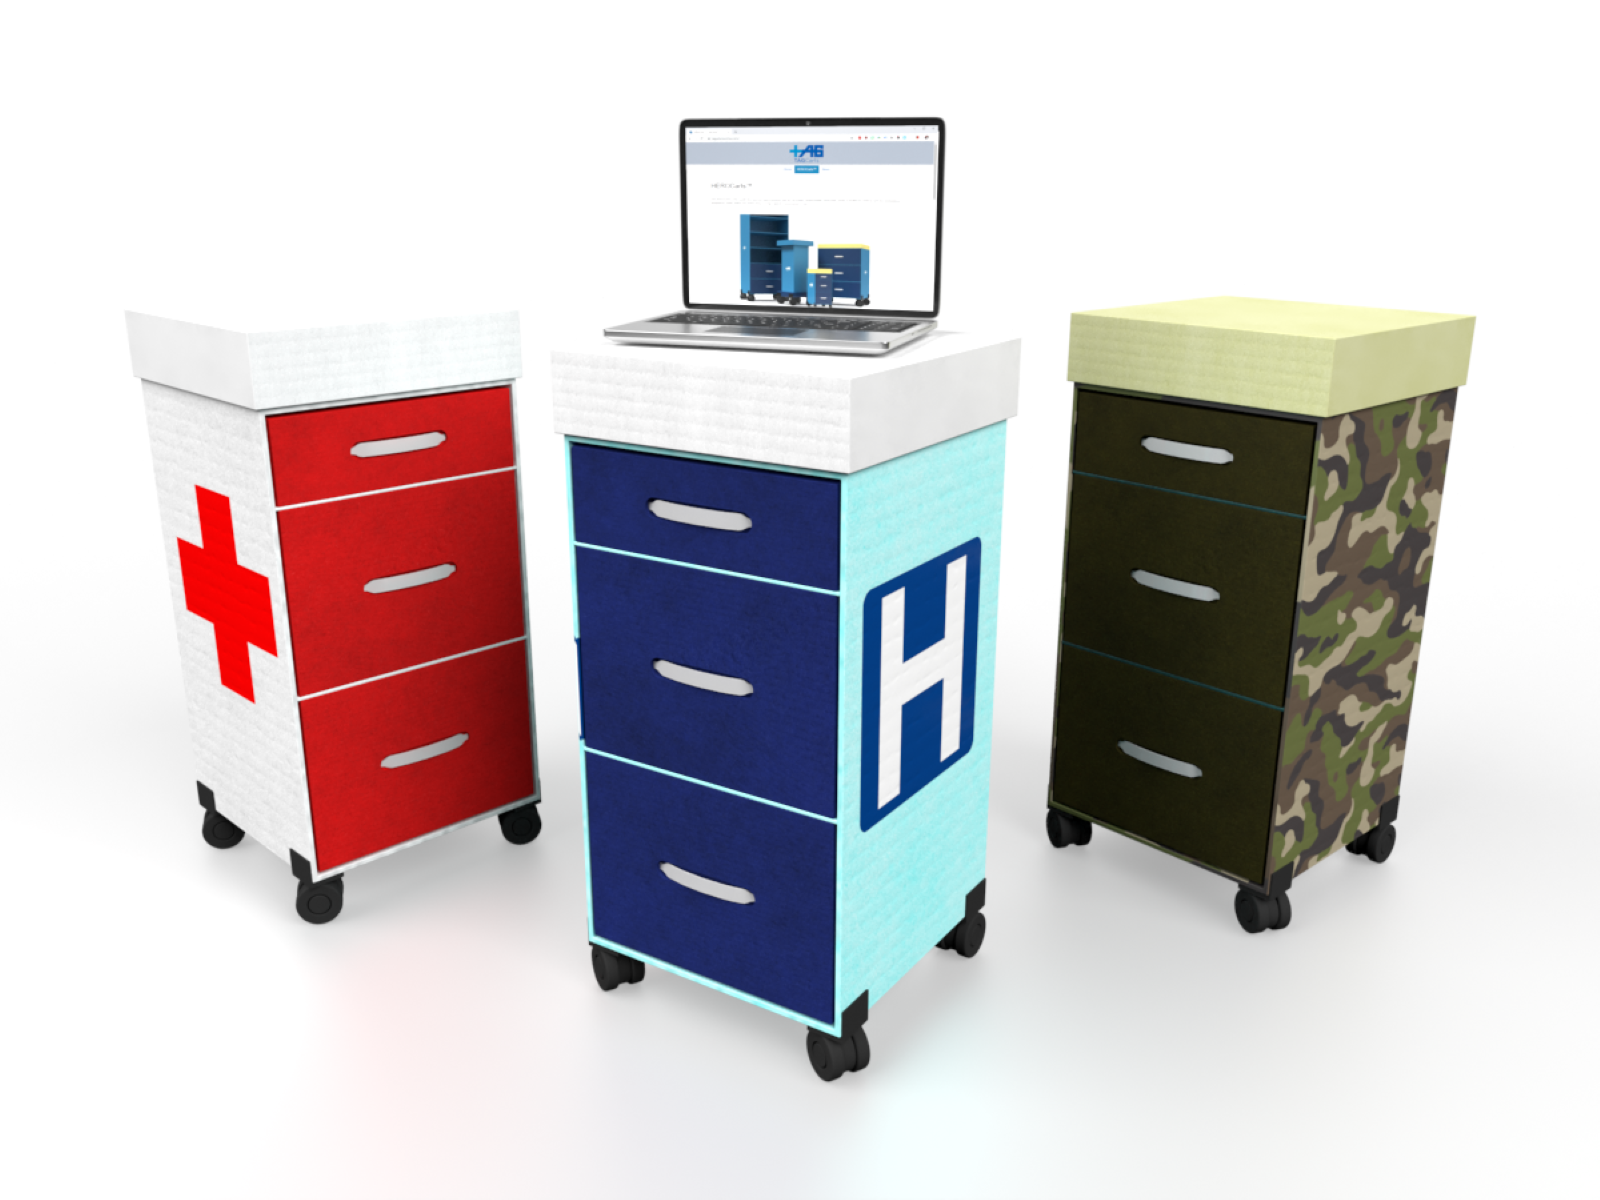 HEROCart Disaster Emergency Response Bedside Cart